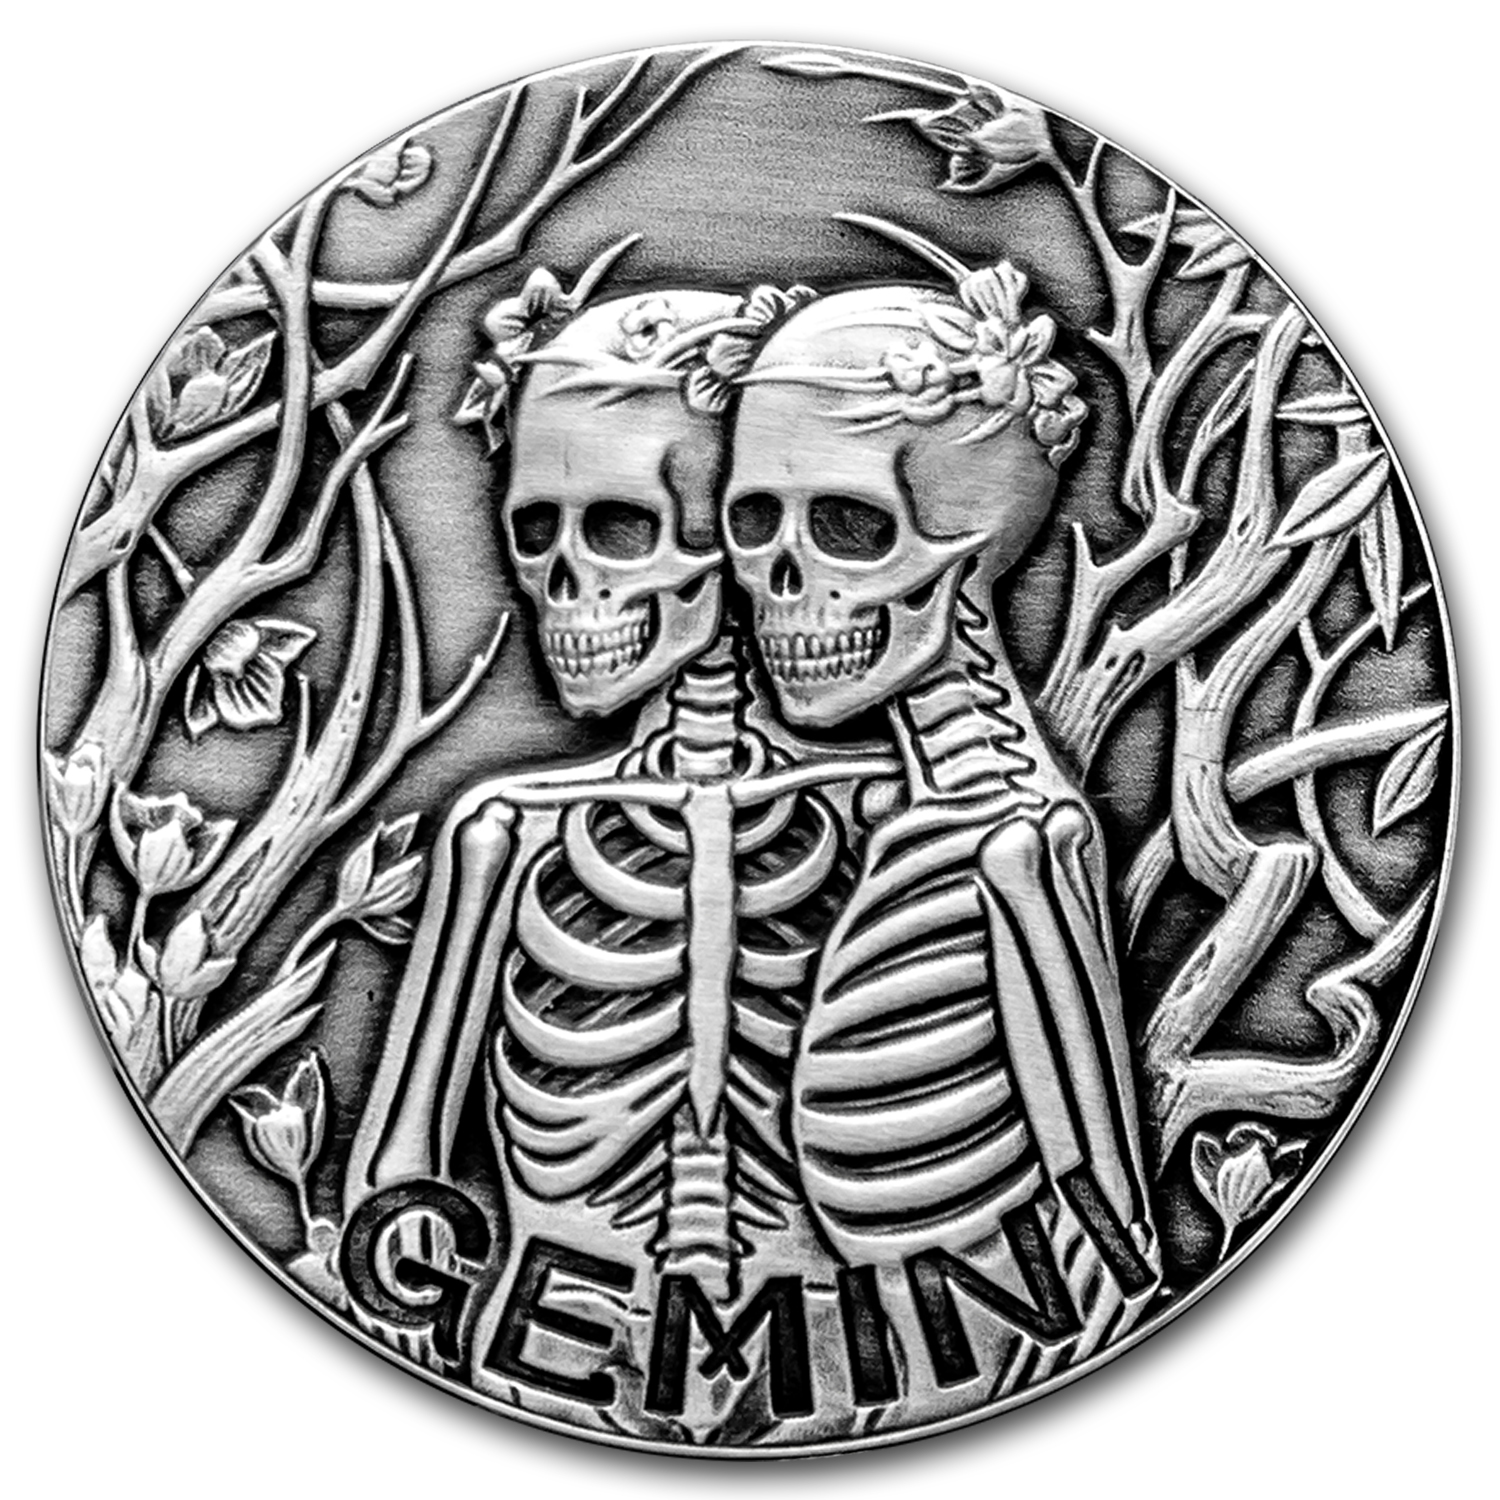 1 oz Silver Antique Round - Zodiac Skull Series (Gemini)